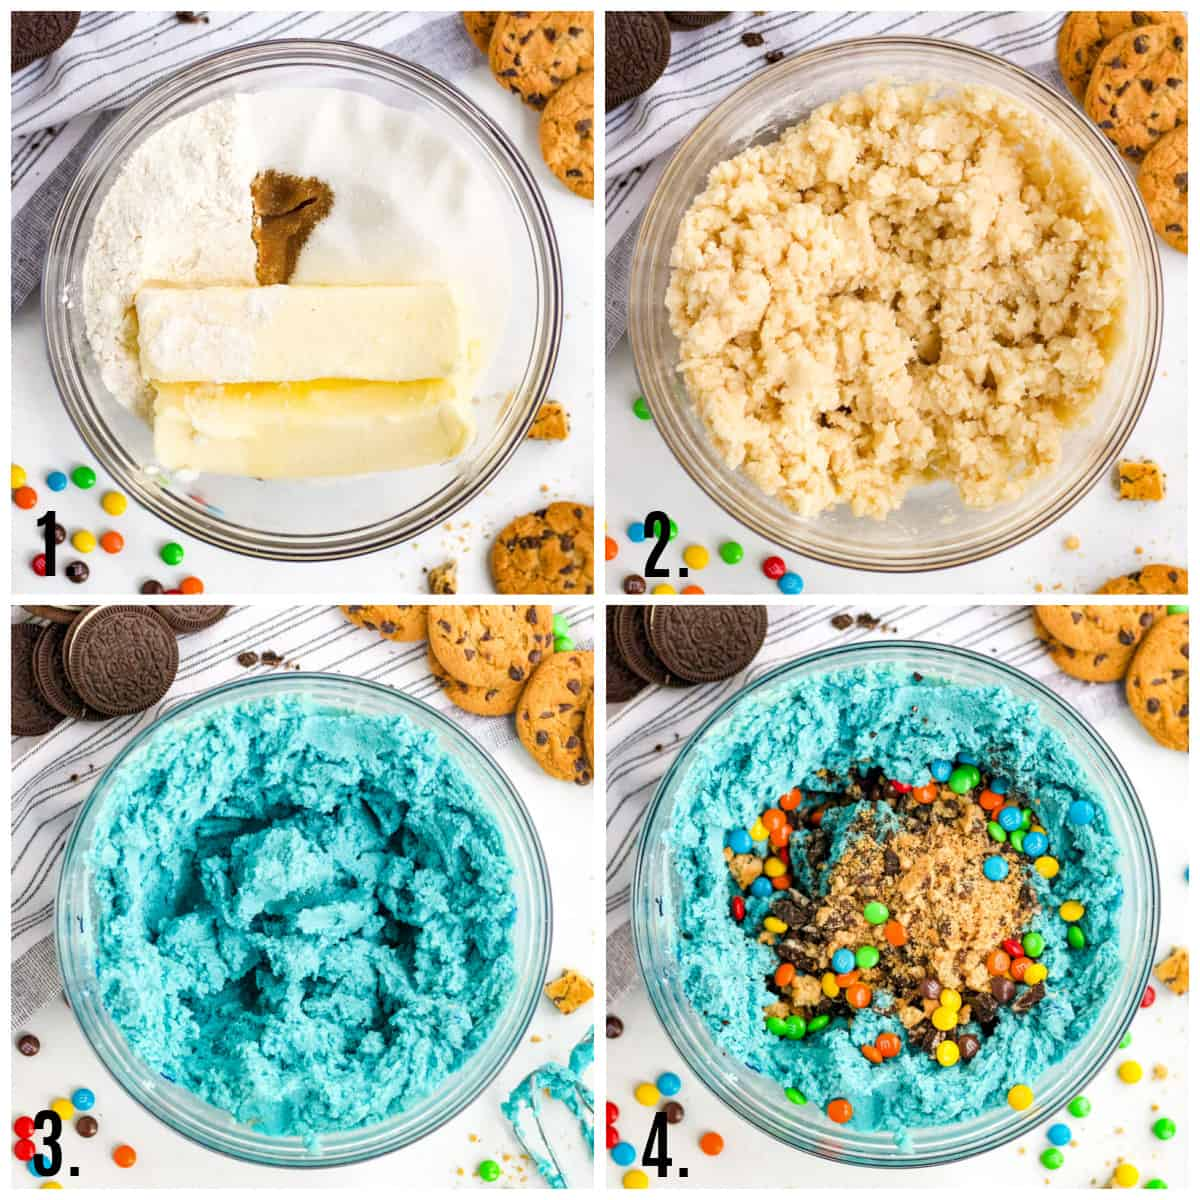 Step by step photos on how to make Cookie Monster Edible Cookie Dough